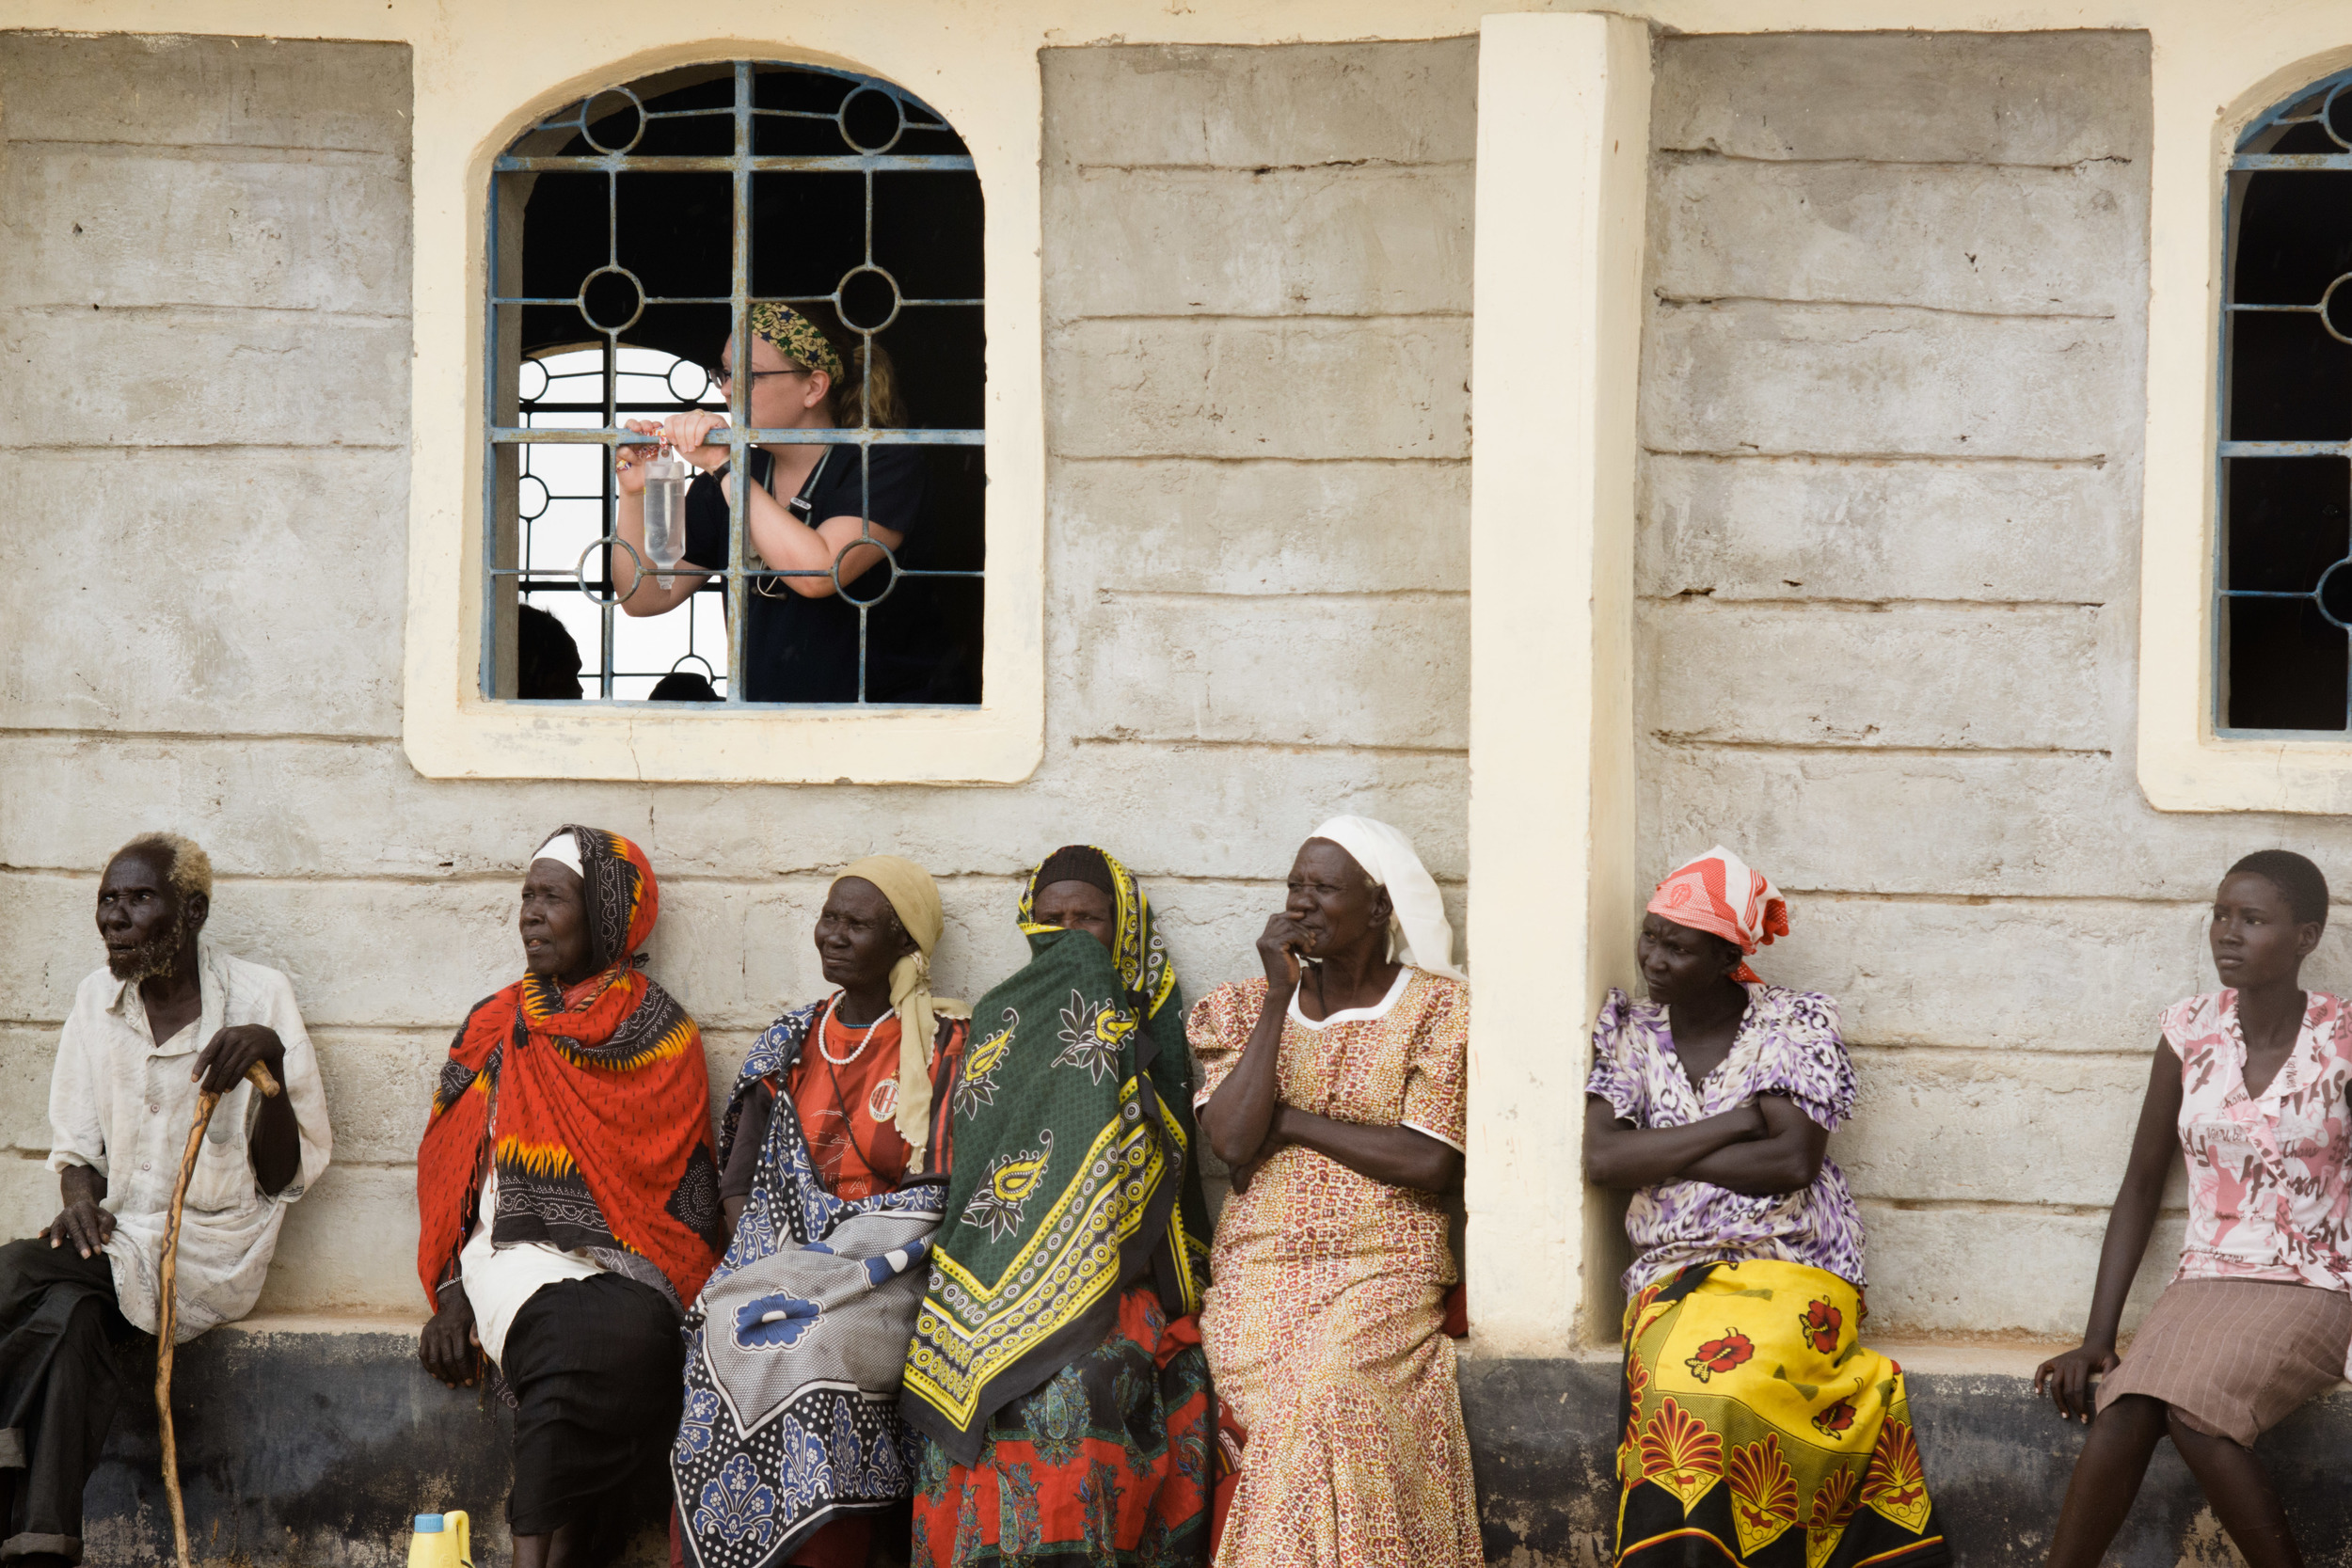 Career missionary Sarah Kanoy hangs an IV bag in the window of the church as patients wait outside.